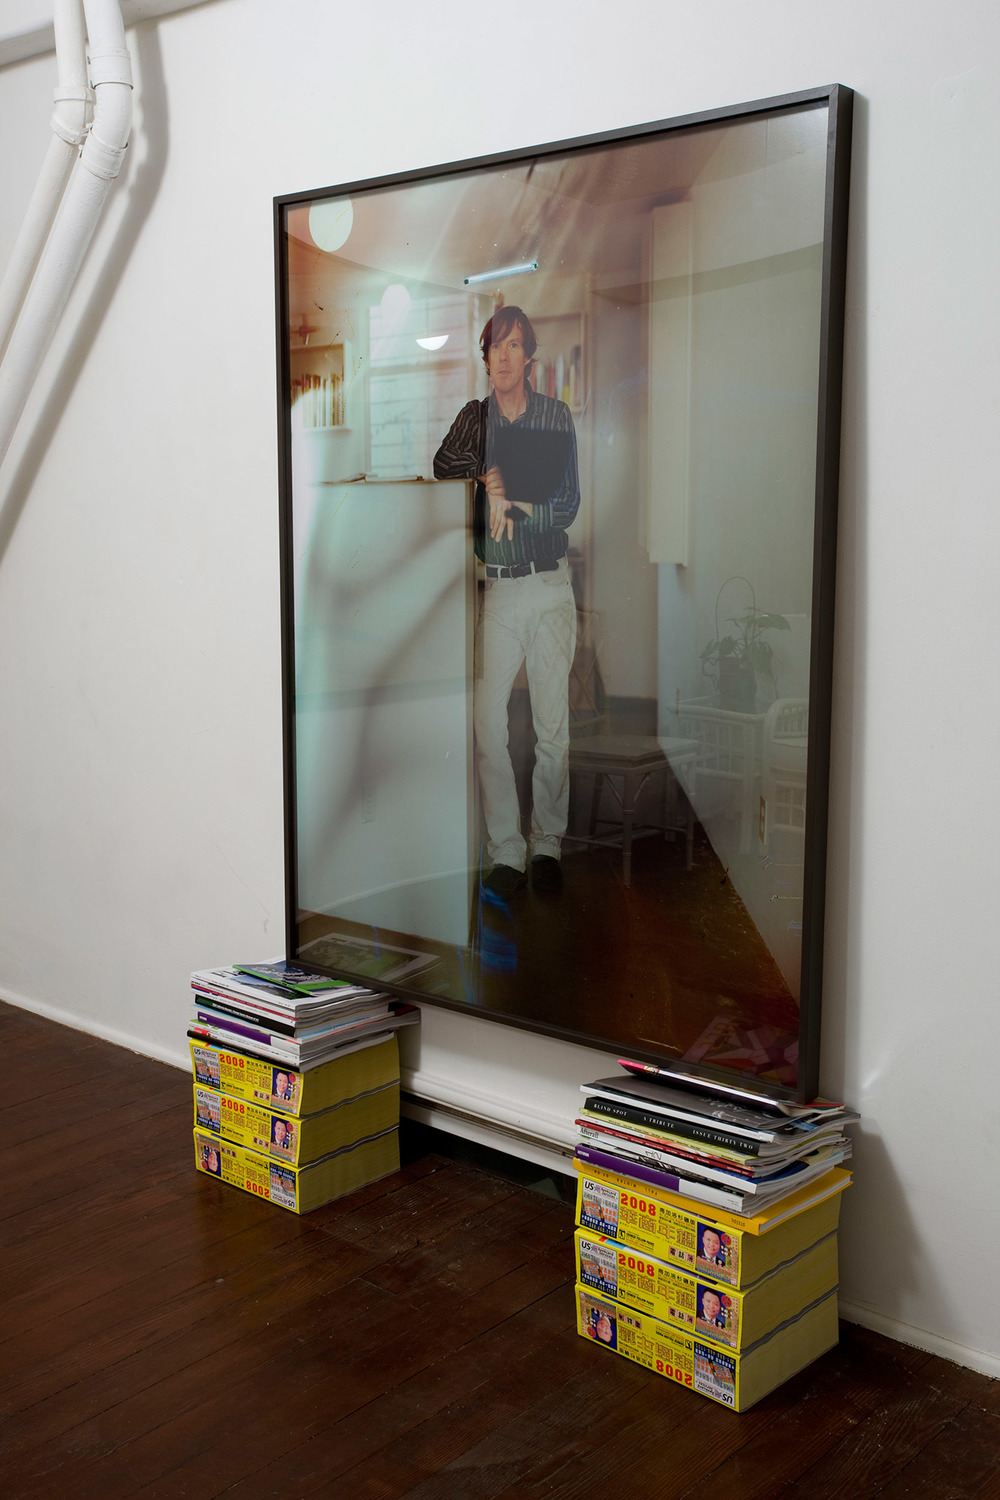 Gallerist (SH), Los Angeles, California, 2007    2008   Hand-processed color photograph  50 x 48 inches